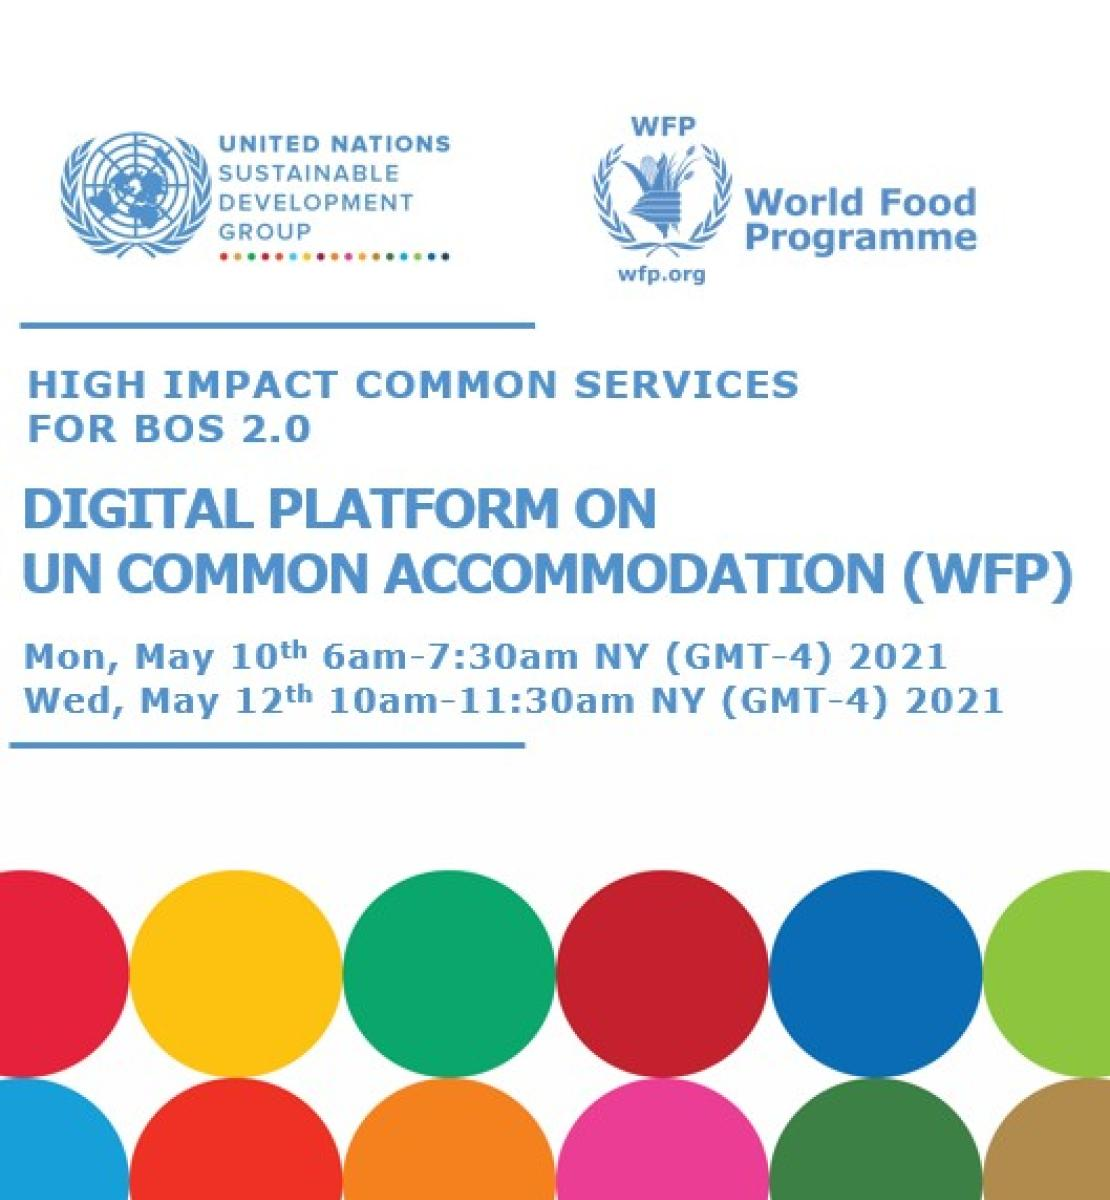 """The image shows the title of the presentation: """"Digital Platform on UN Common Accommodation (WFP)"""". There is a UNSDG and WFP logo and decorative SDG circles at the bottom."""